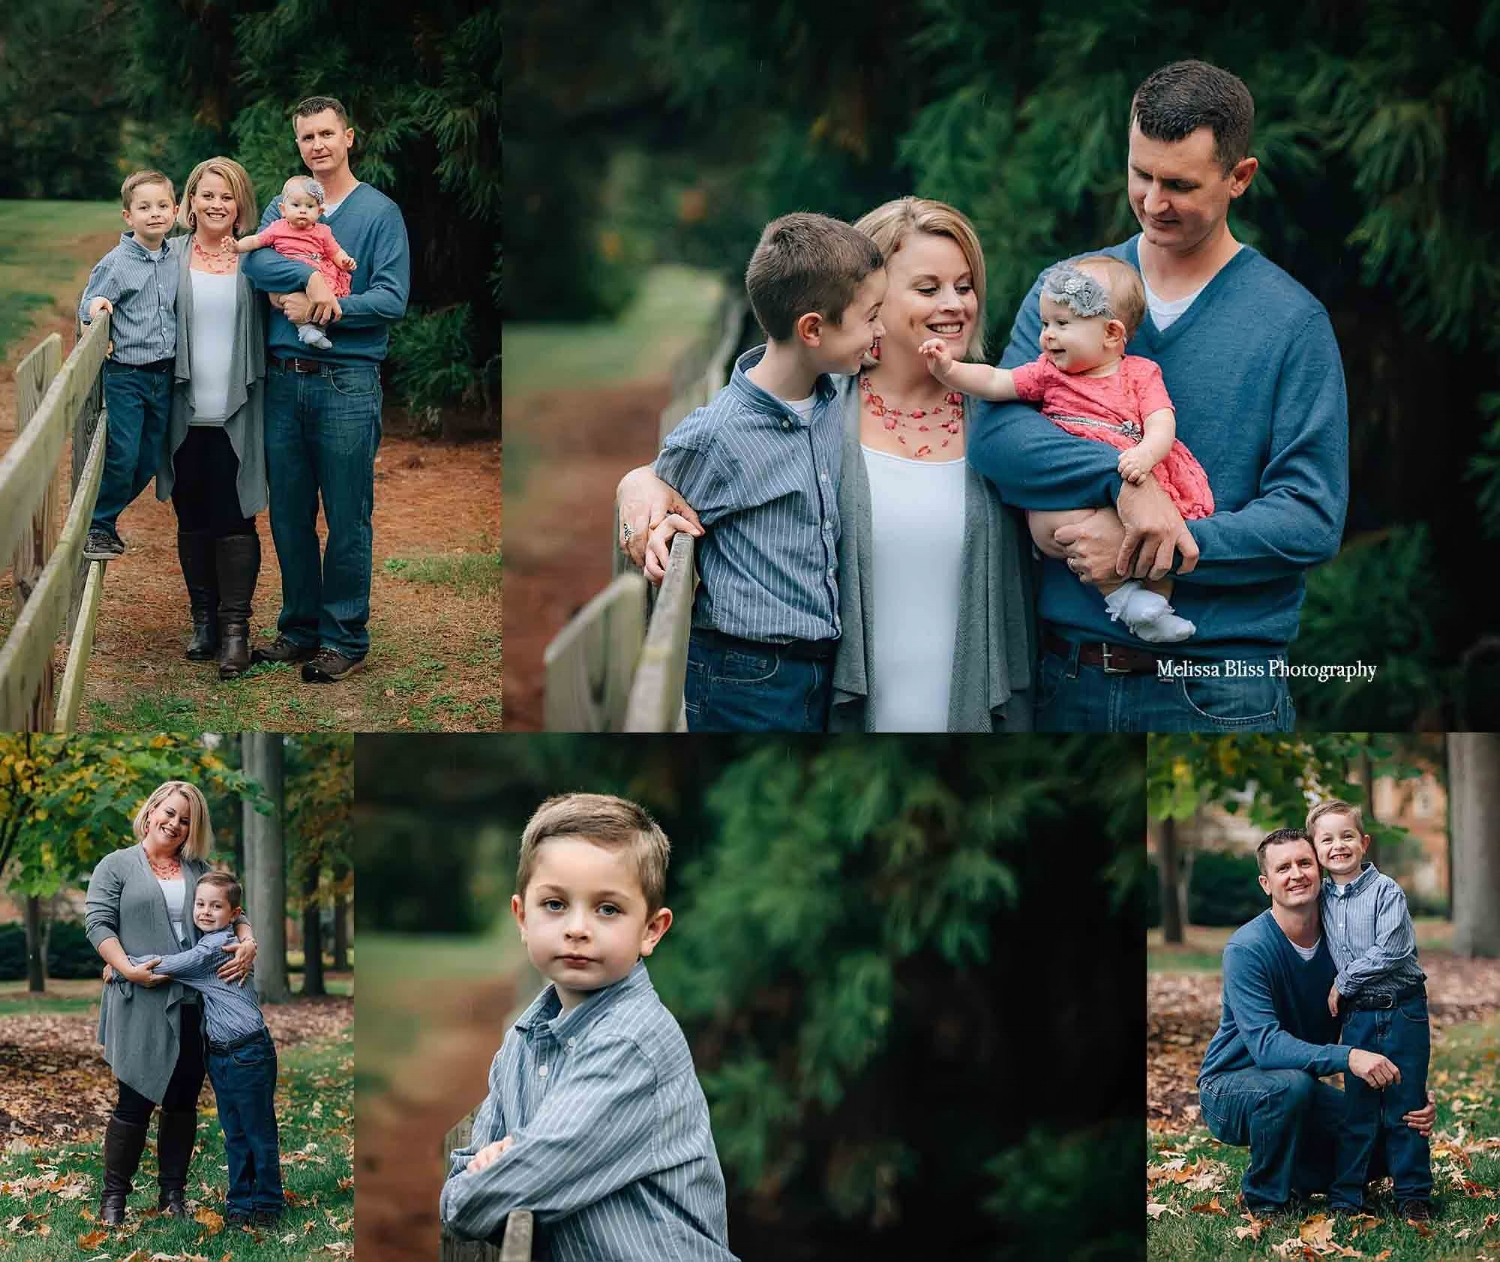 virginia-beach-family-photo-session-norfolk-family-photographer-melissa-bliss-photography-mini-session.jpg